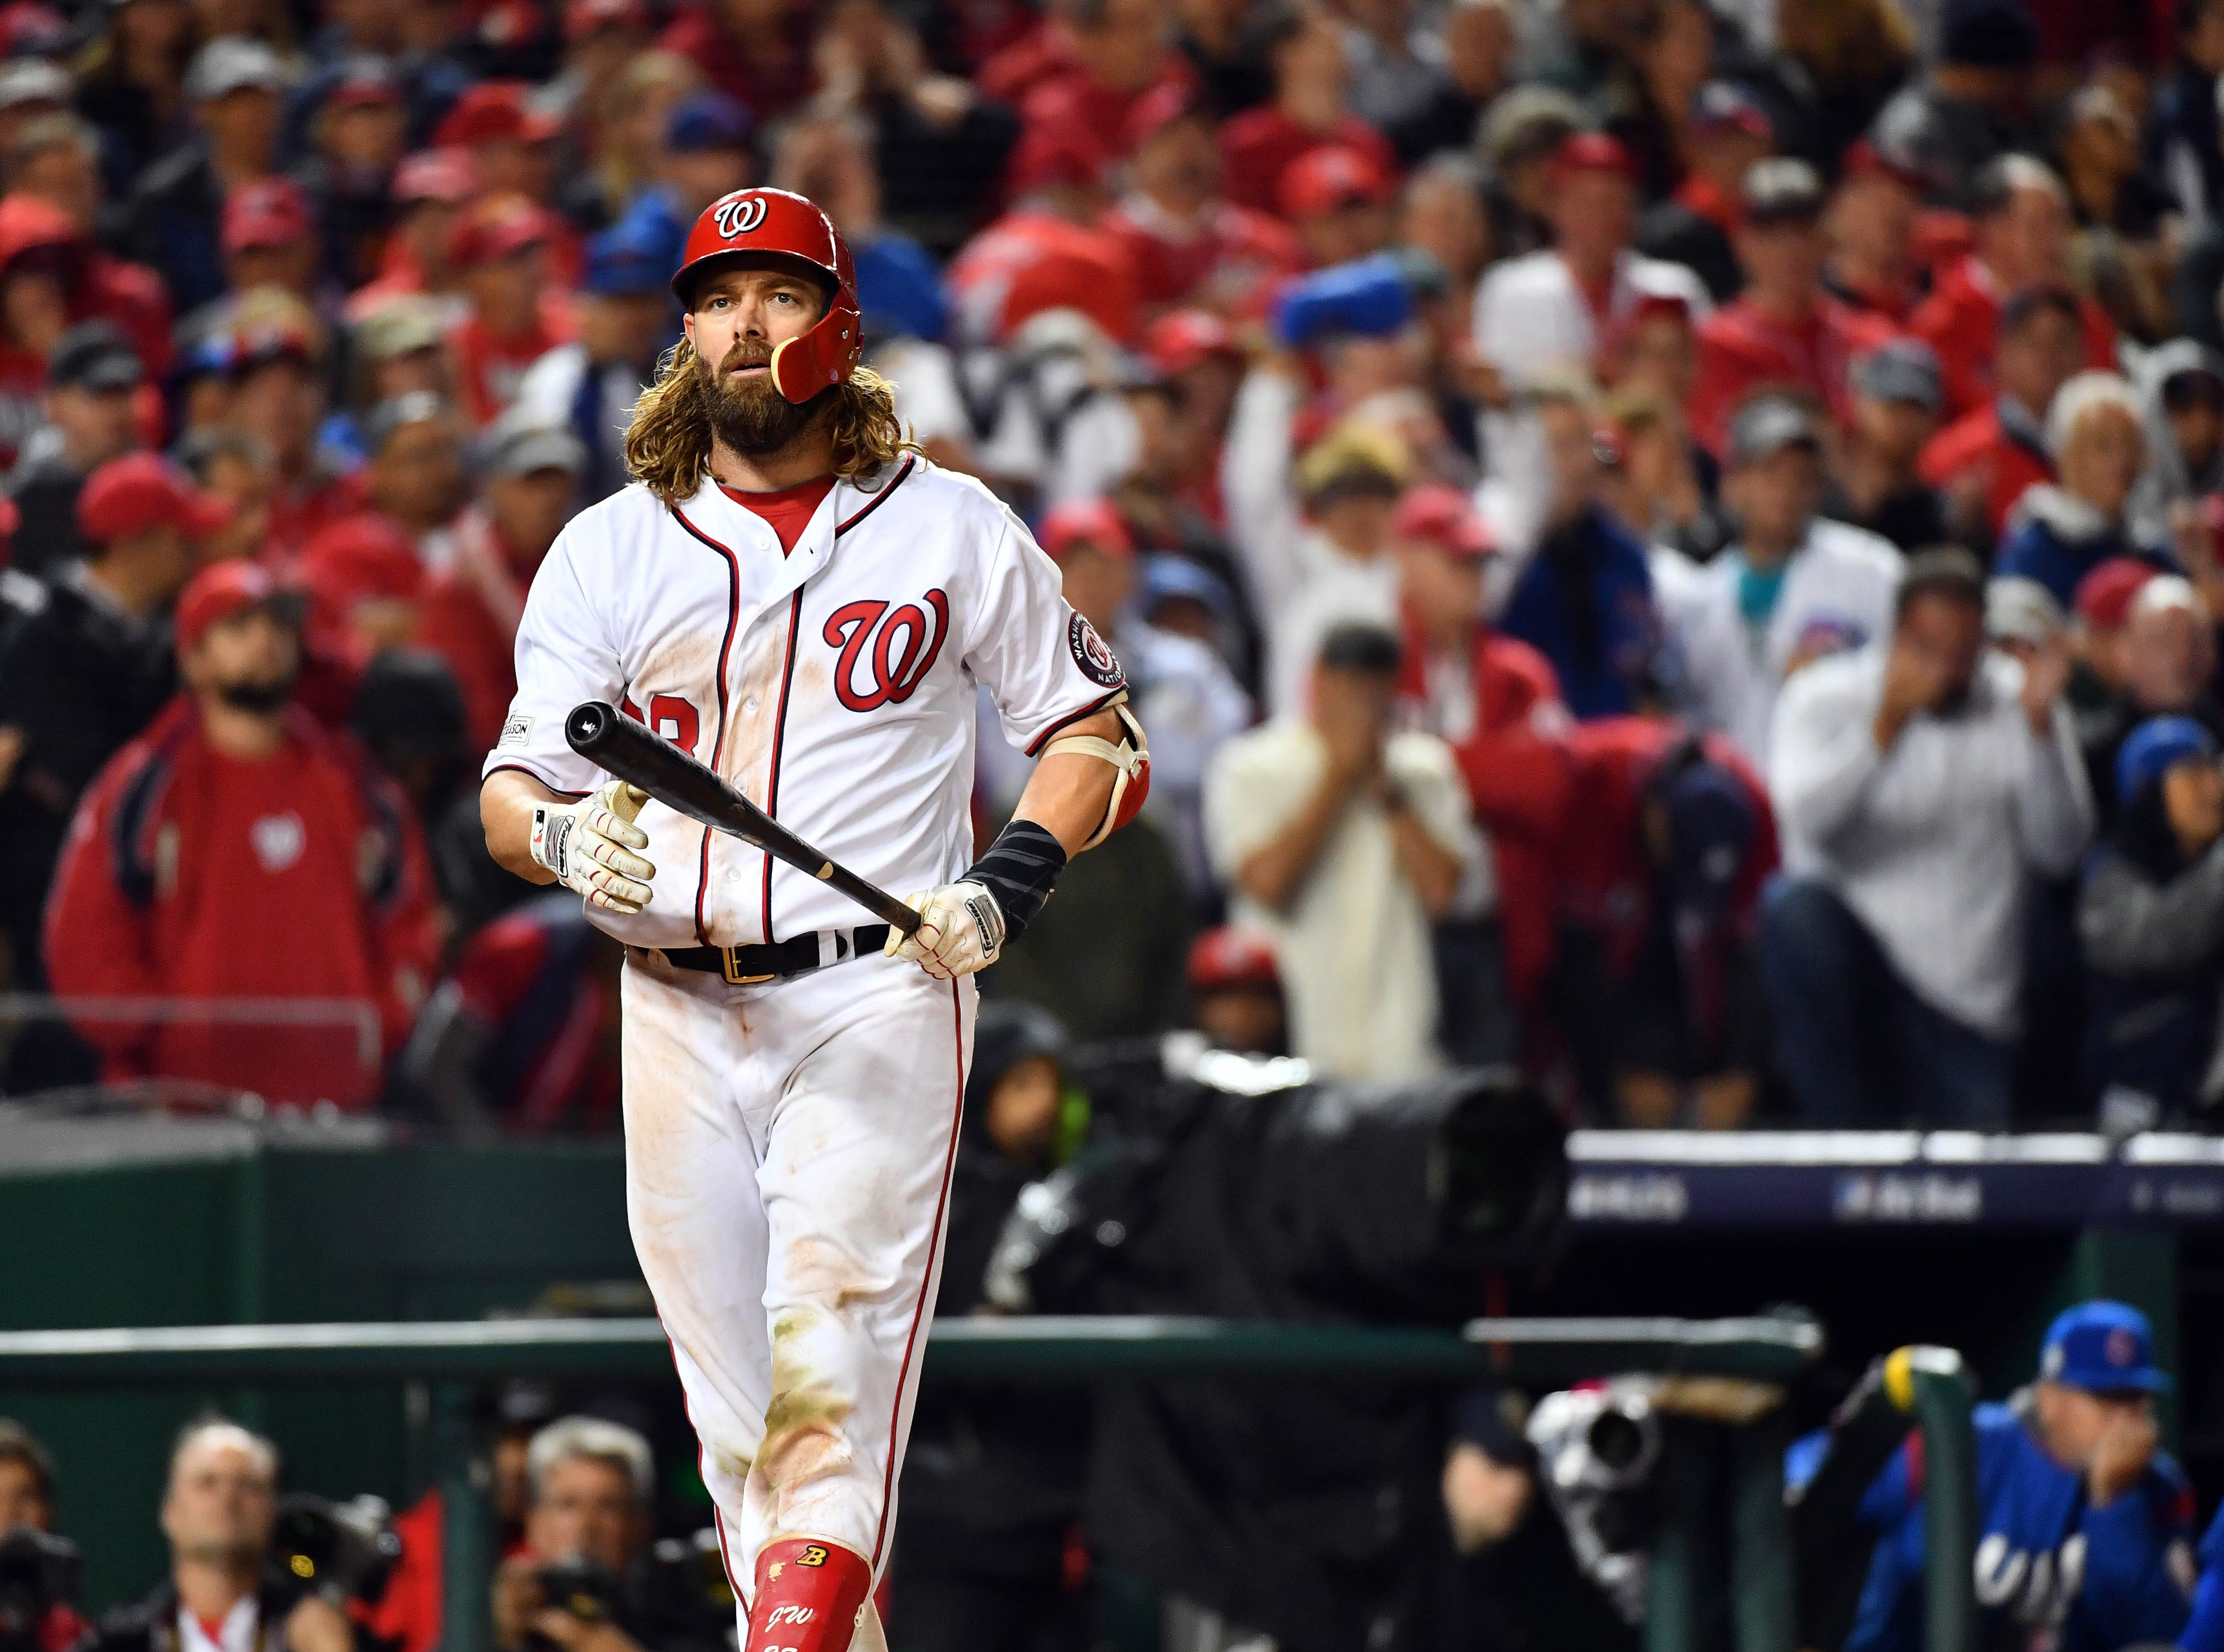 Usp Mlb Nlds Chicago Cubs At Washington Nationals S Bbn Was Chc Usa Dc